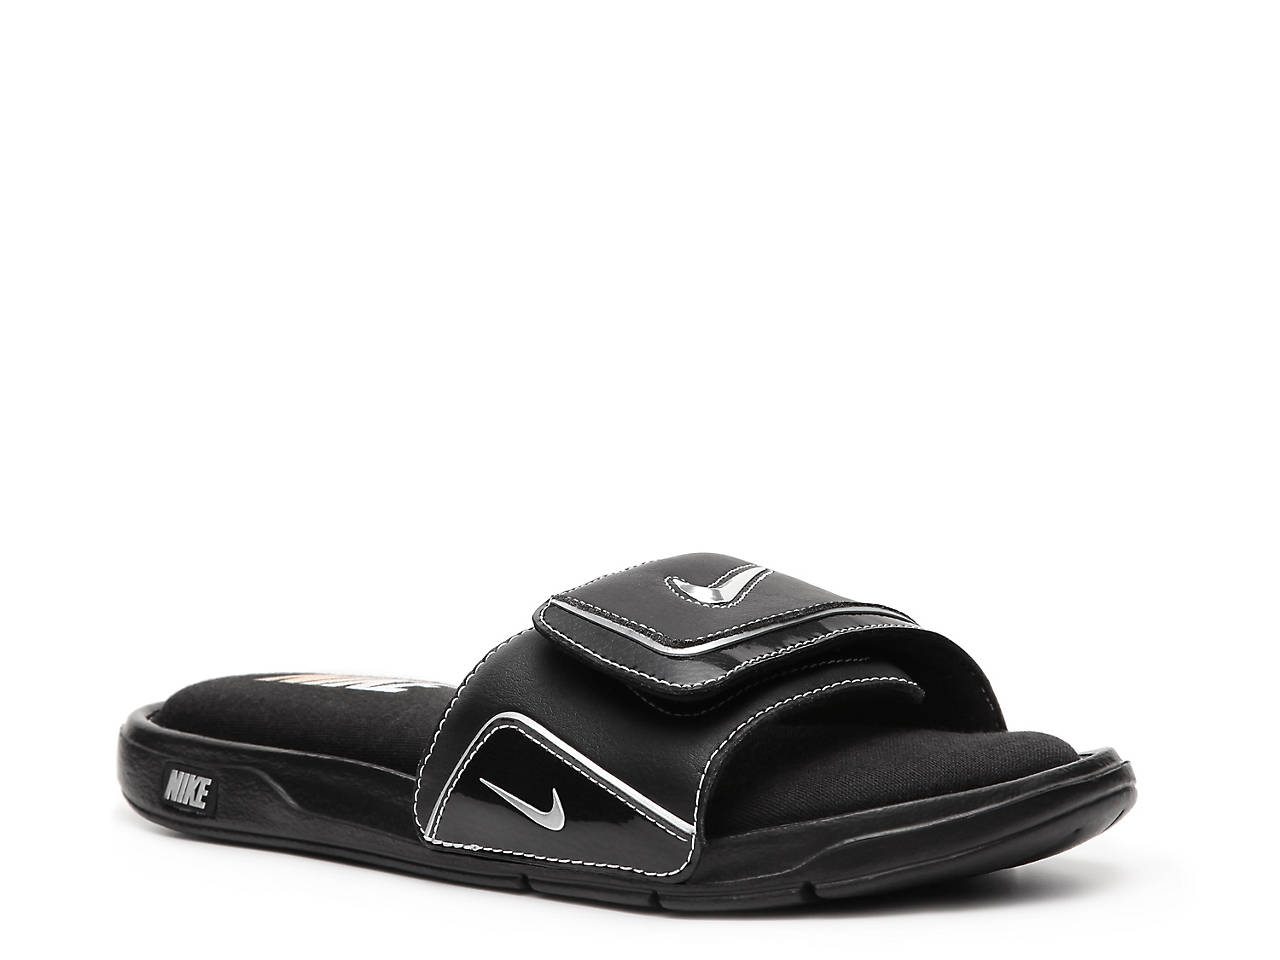 winter slide comfort autumnwinter men metallic autumn silver white nike p sandal shop shoes us black c comforter blackmetallic outlet silverwhite